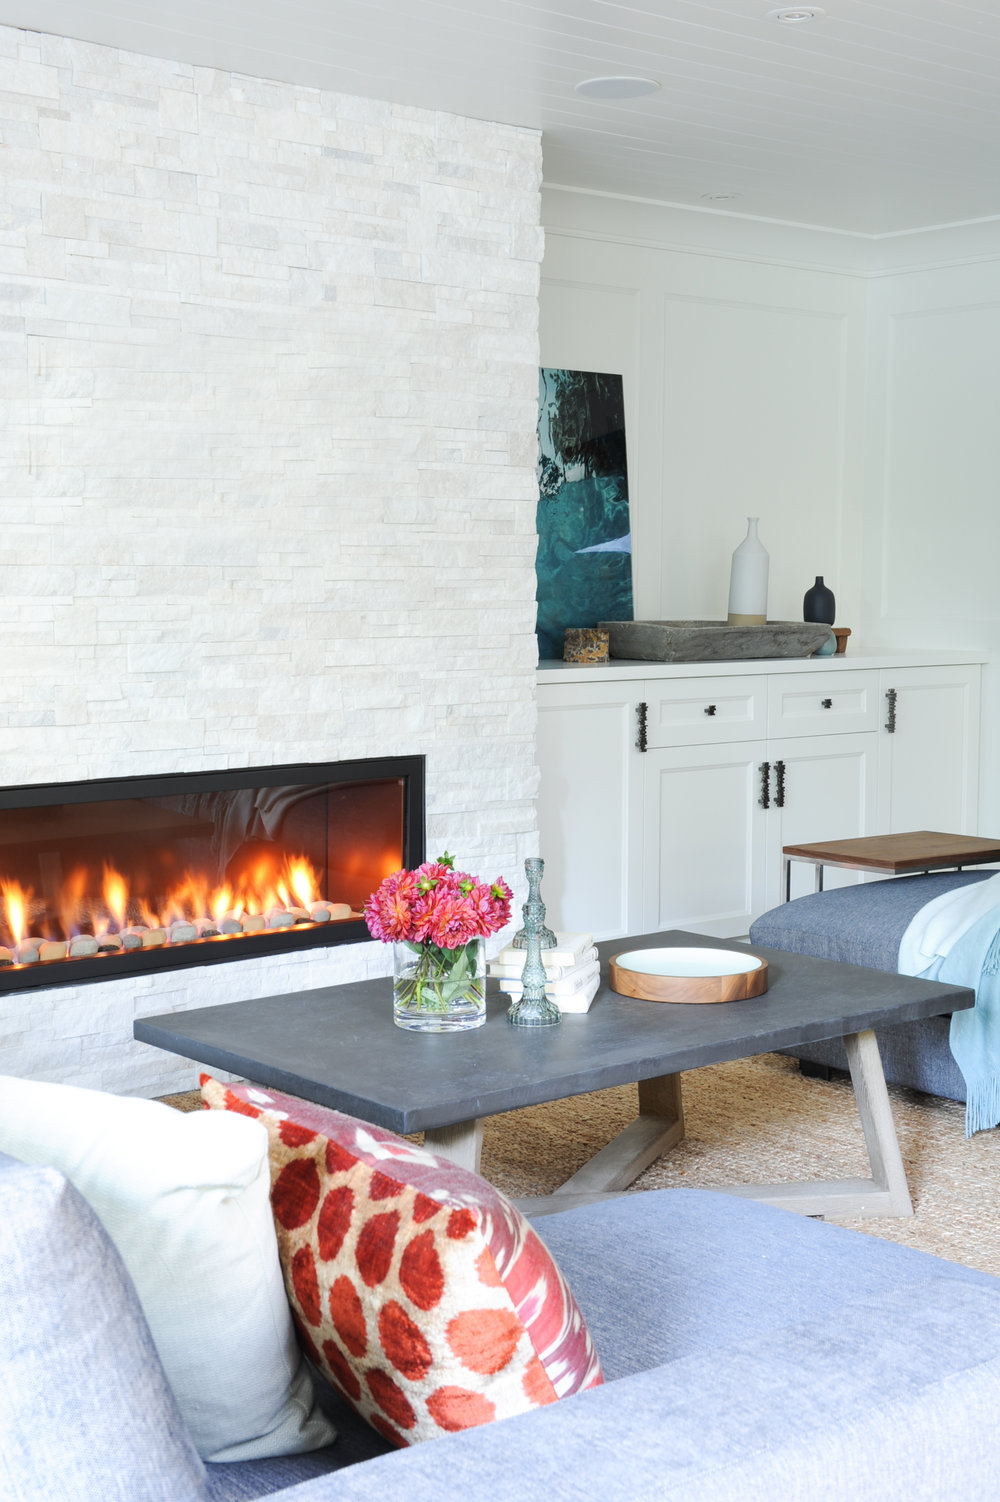 West Vancouver Part 1: Living Room, Nyla Free Designs Inc., Tracey Ayton Photography